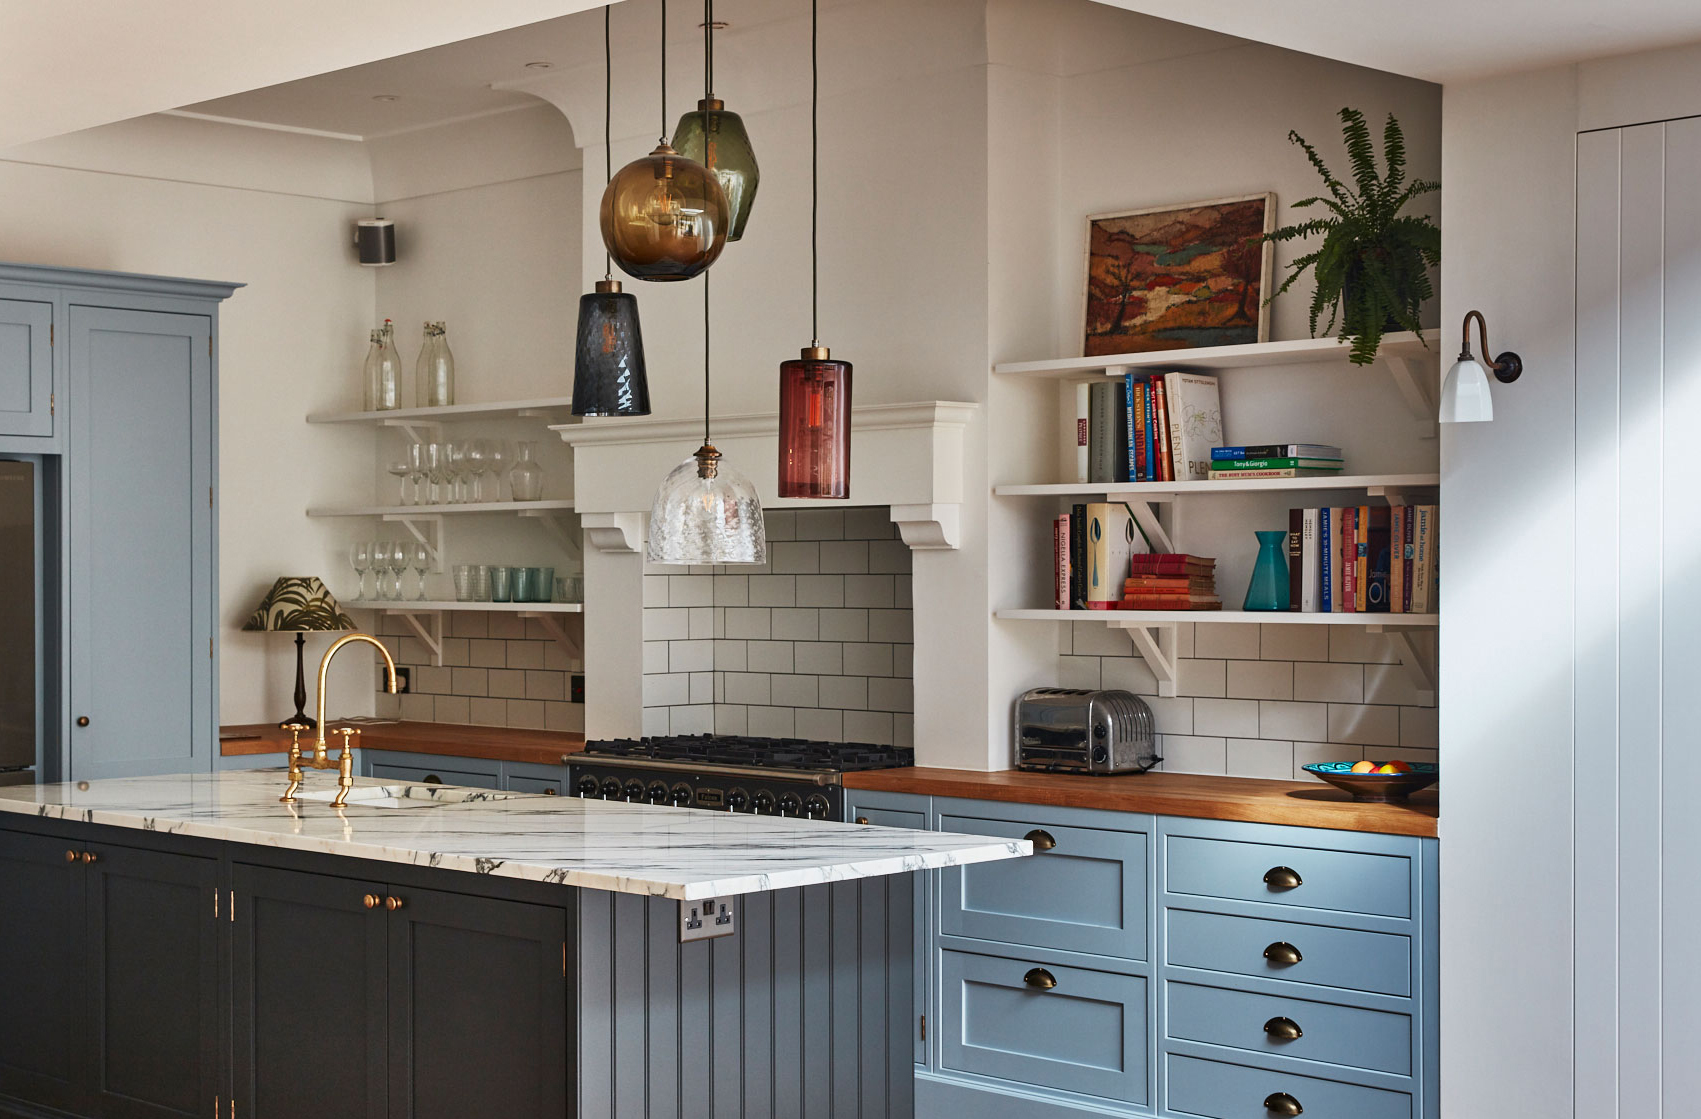 Photograph of a kitchen project